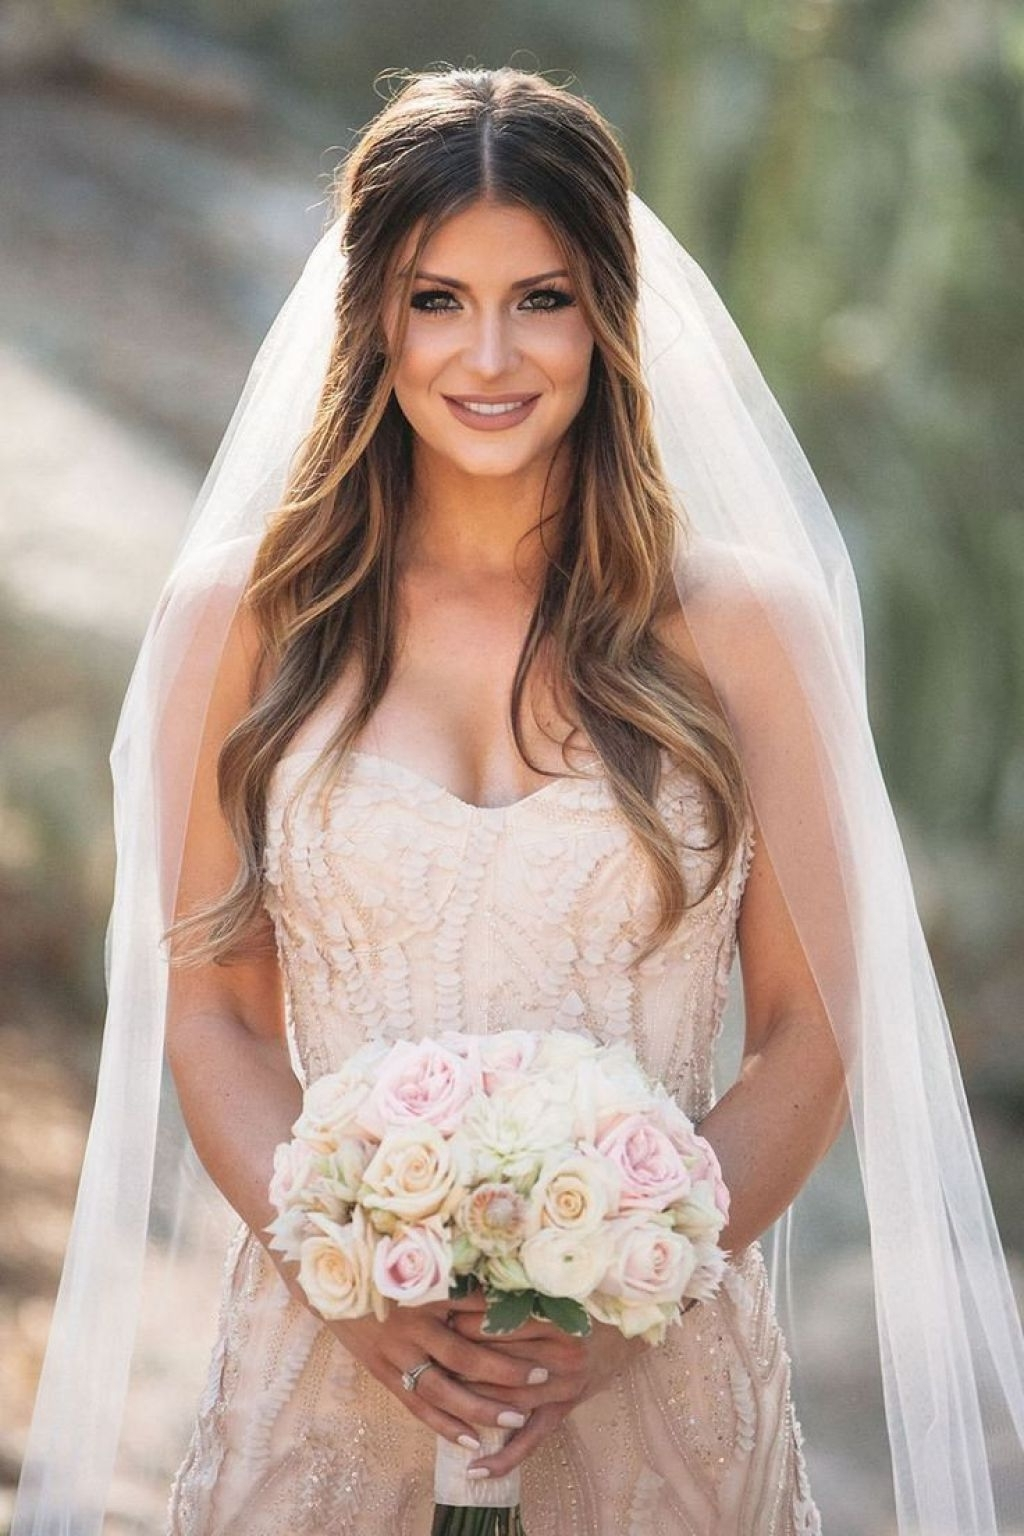 Most Popular Wedding Hairstyles With Long Hair Down Pertaining To √ 24+ Inspirational Wedding Hairstyles For Long Hair Down: Long (View 9 of 15)